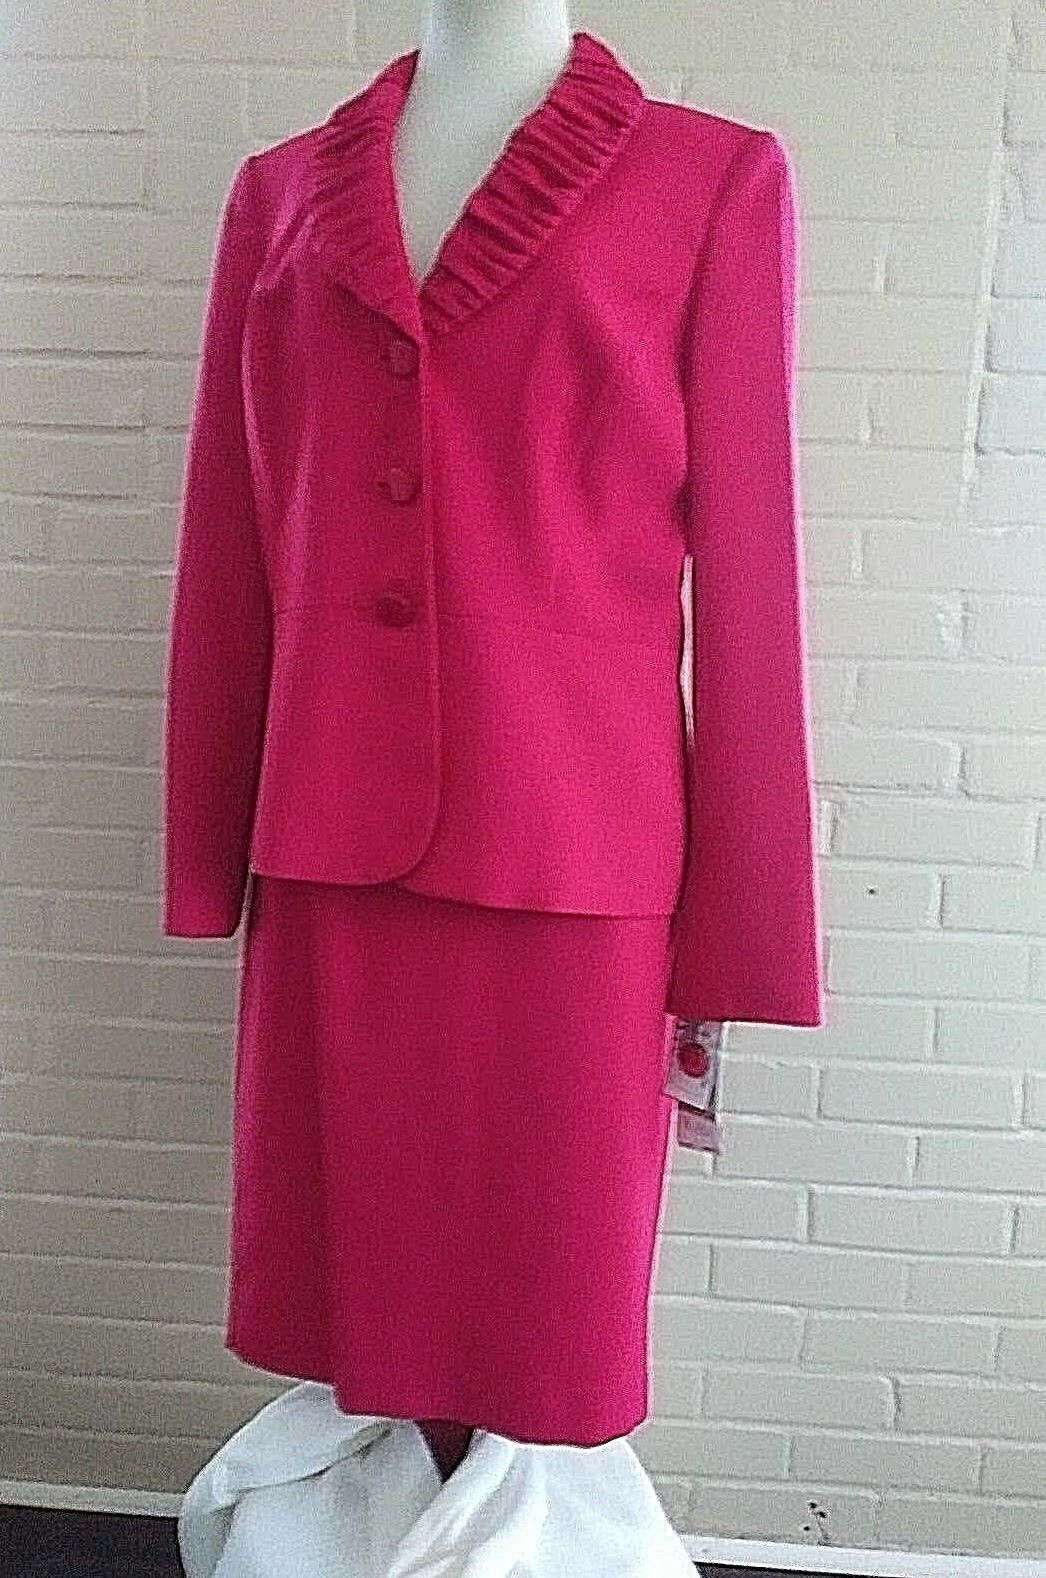 NWT Le Suit Power Suit Wild pink Red Dress 2 Pc Blazer & Skirt Size 12    W12